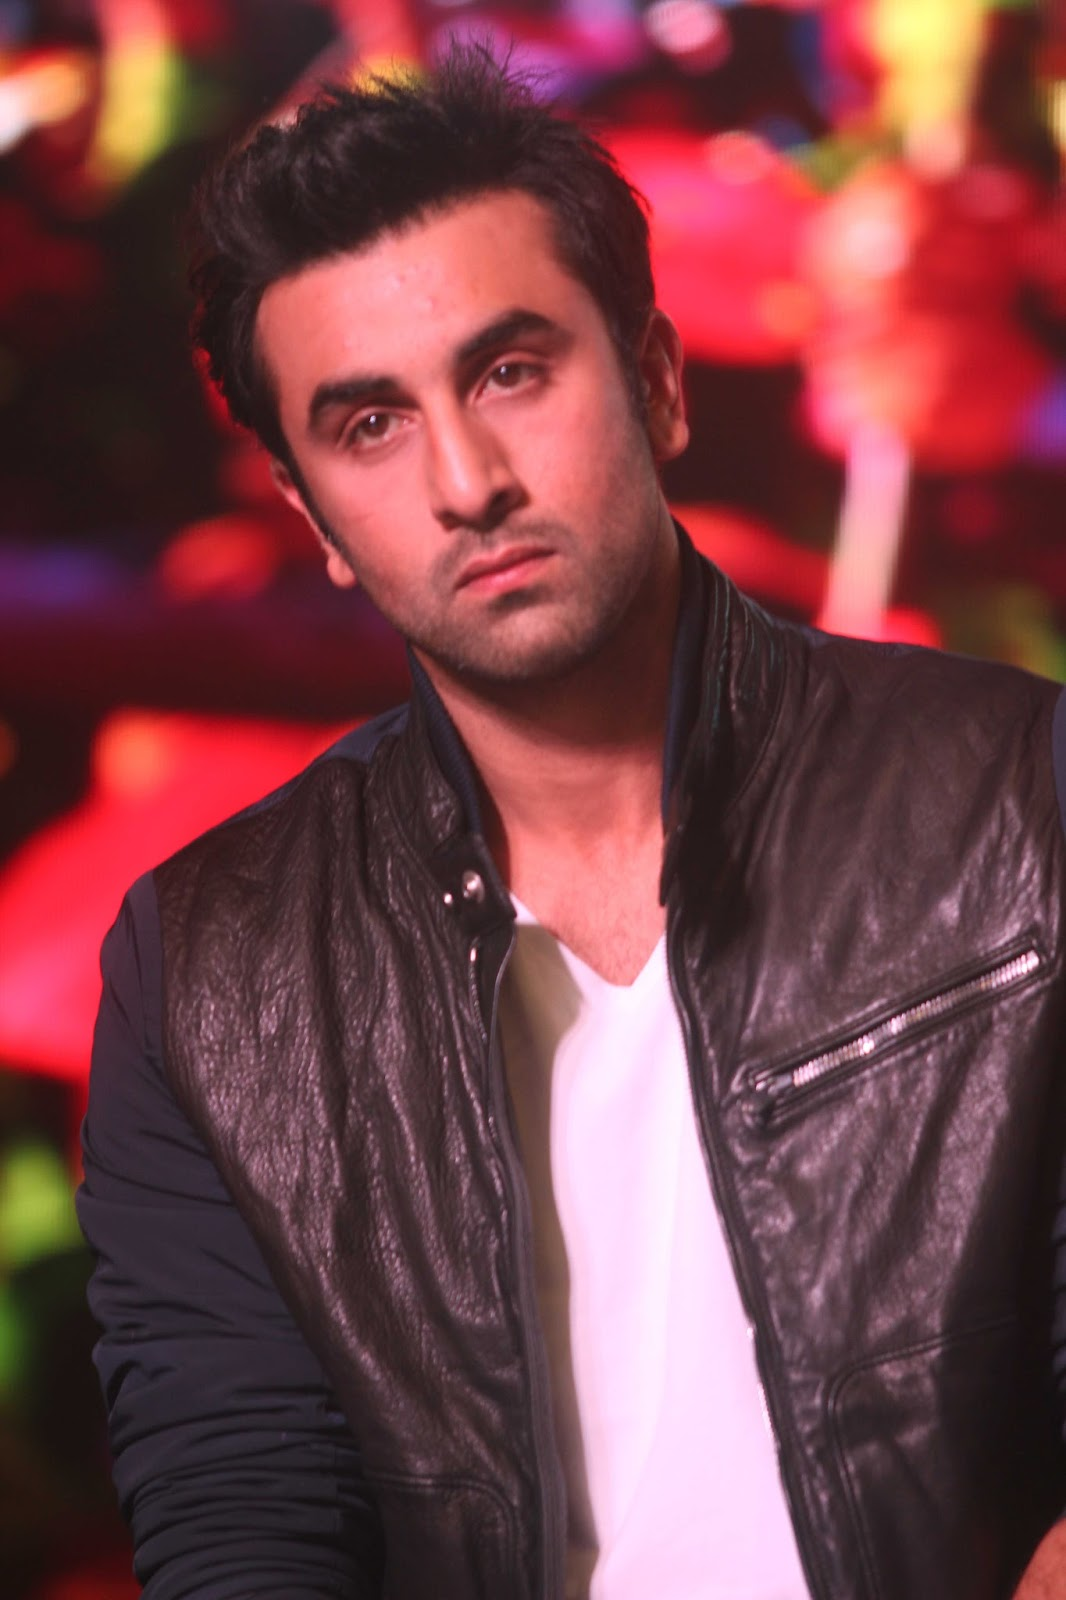 http://1.bp.blogspot.com/-2iZ3sbNQH1k/UinBnUK1r4I/AAAAAAABiR8/SciaF2QSNT8/s1600/Ranbir+Kapoor+at+the+launch+of+song+%2527Aare+Aare%2527+from+movie+%2527Besharam%2527+%25284%2529.JPG